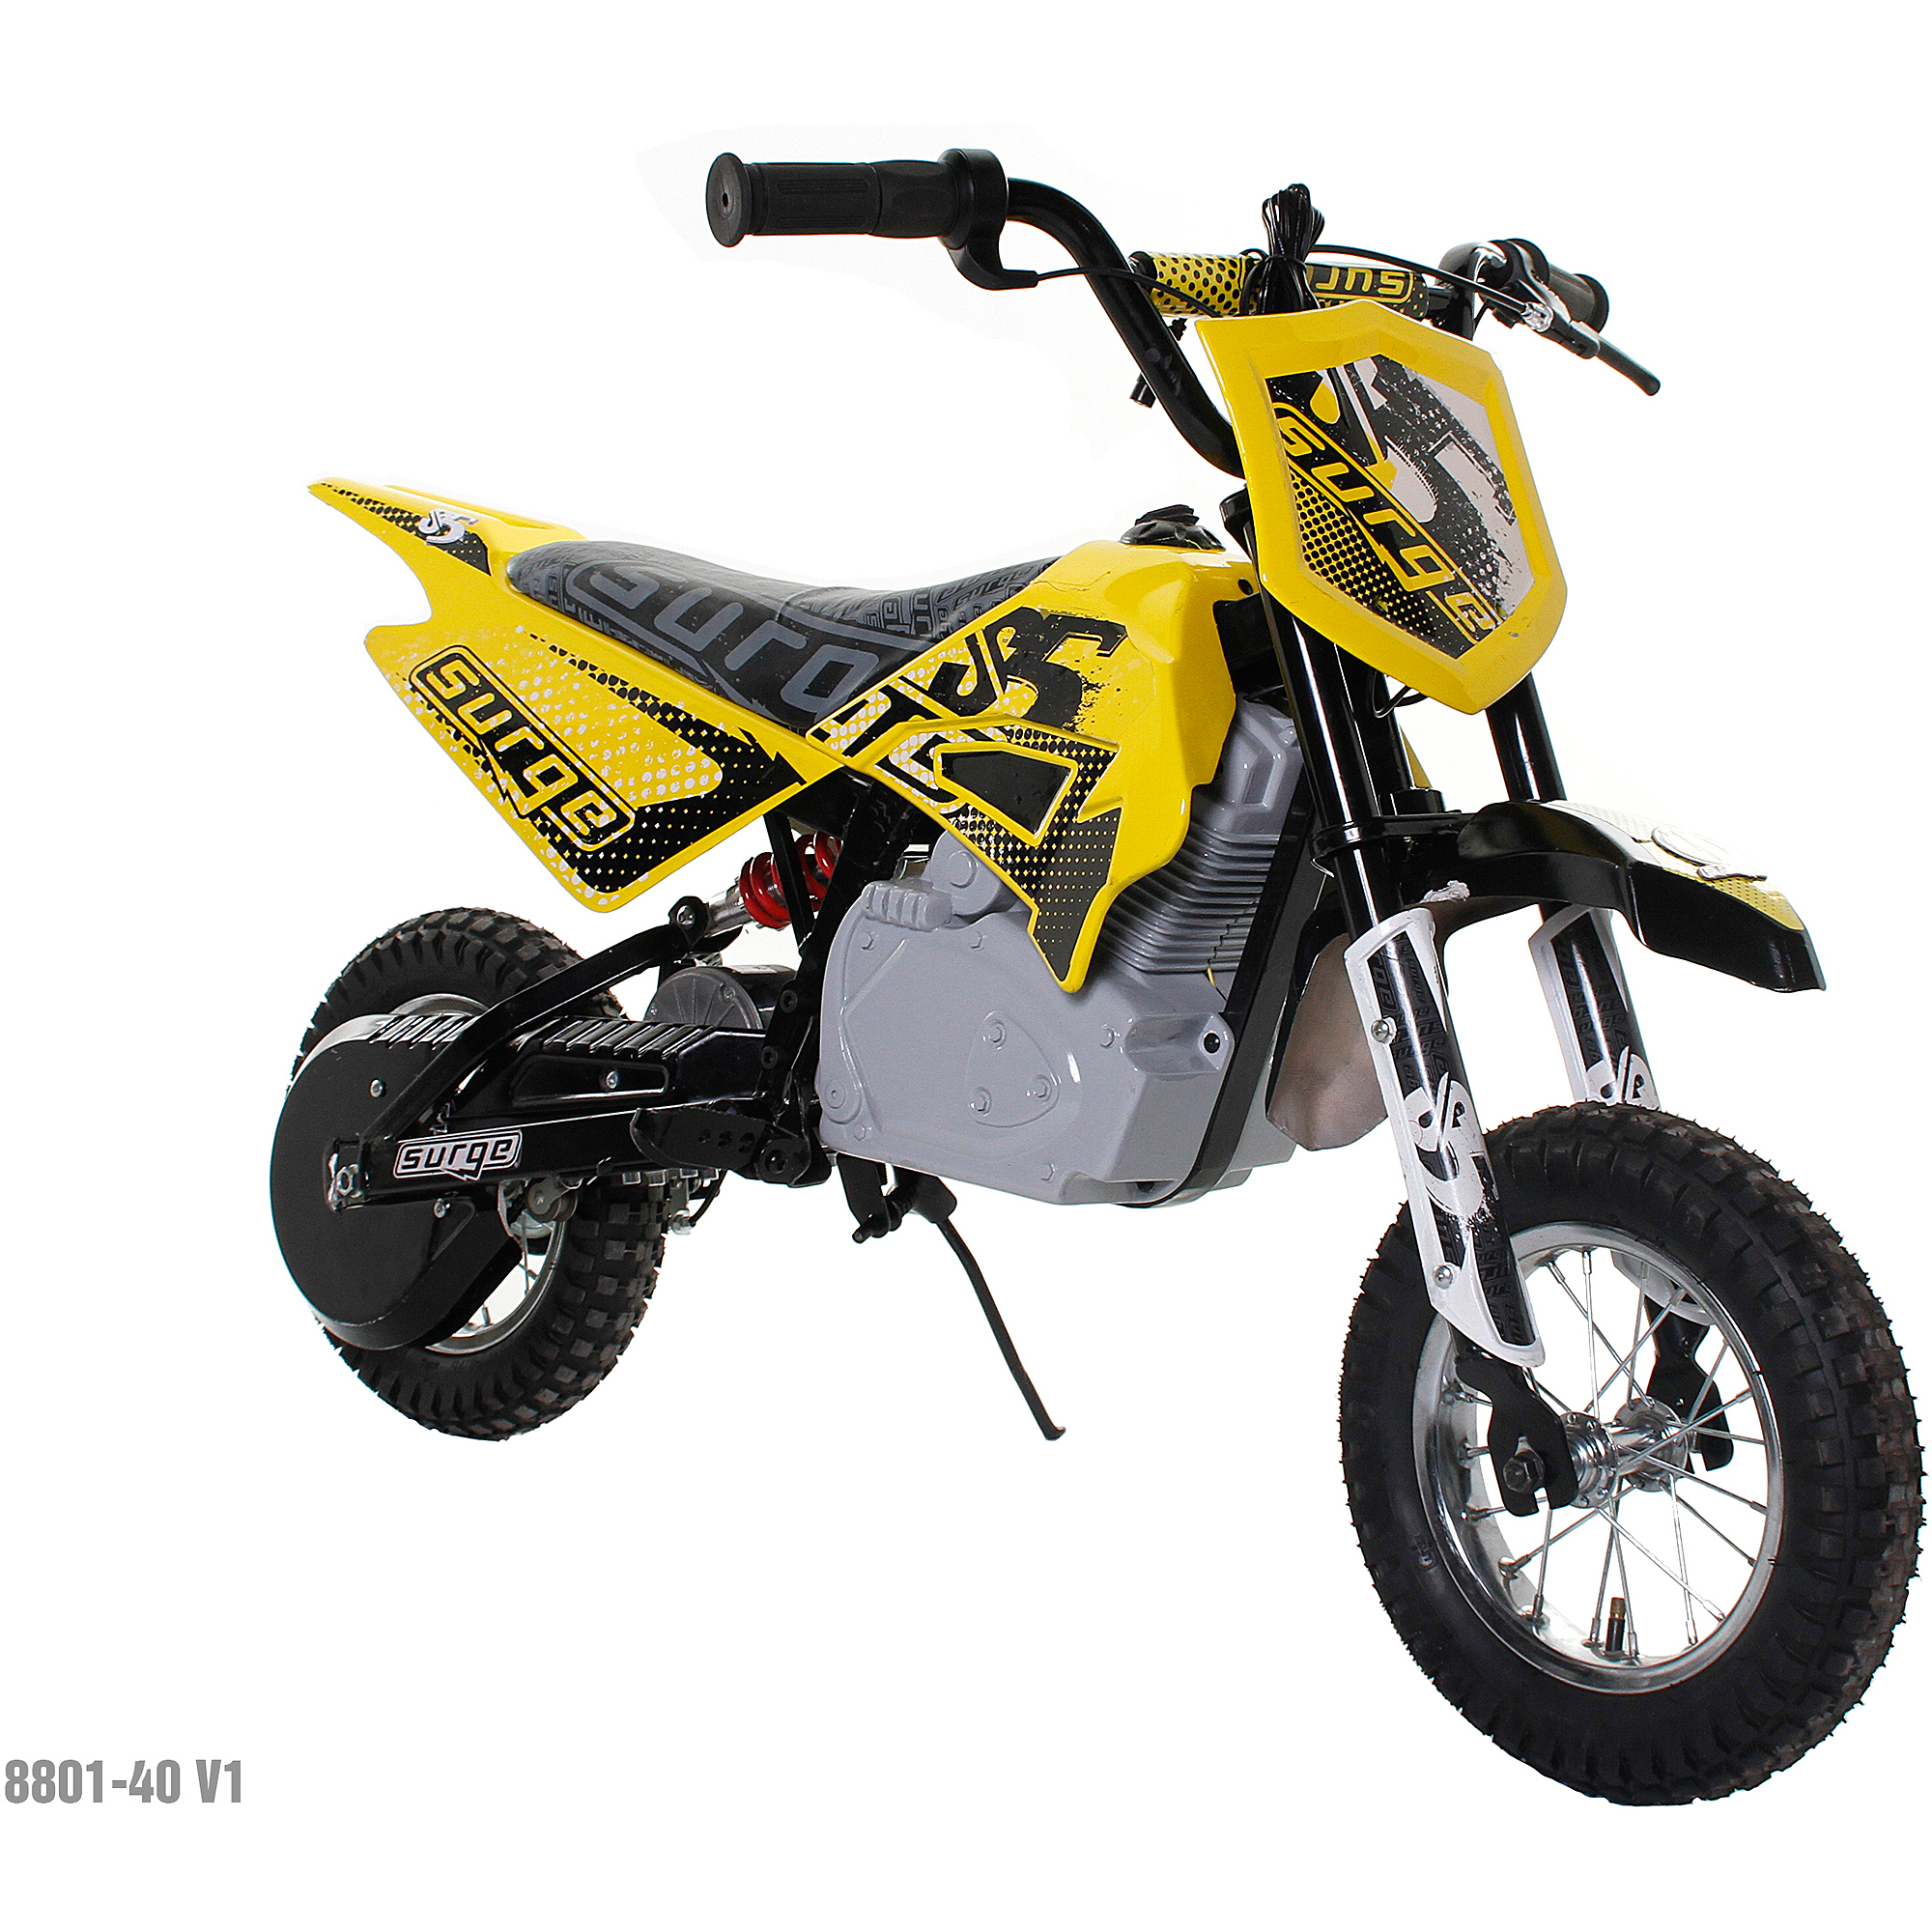 Surge Boys' 24V Electric Dirt Bike, Yellow